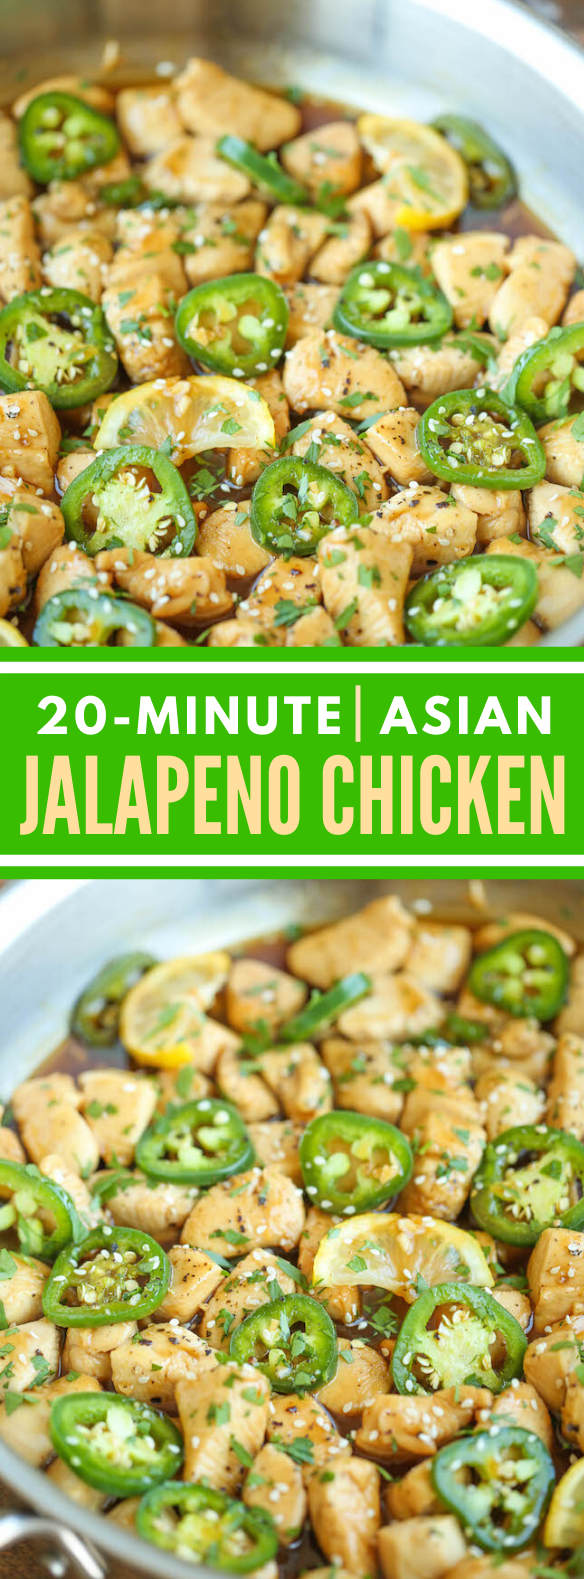 ASIAN JALAPENO CHICKEN #dinner #healthier